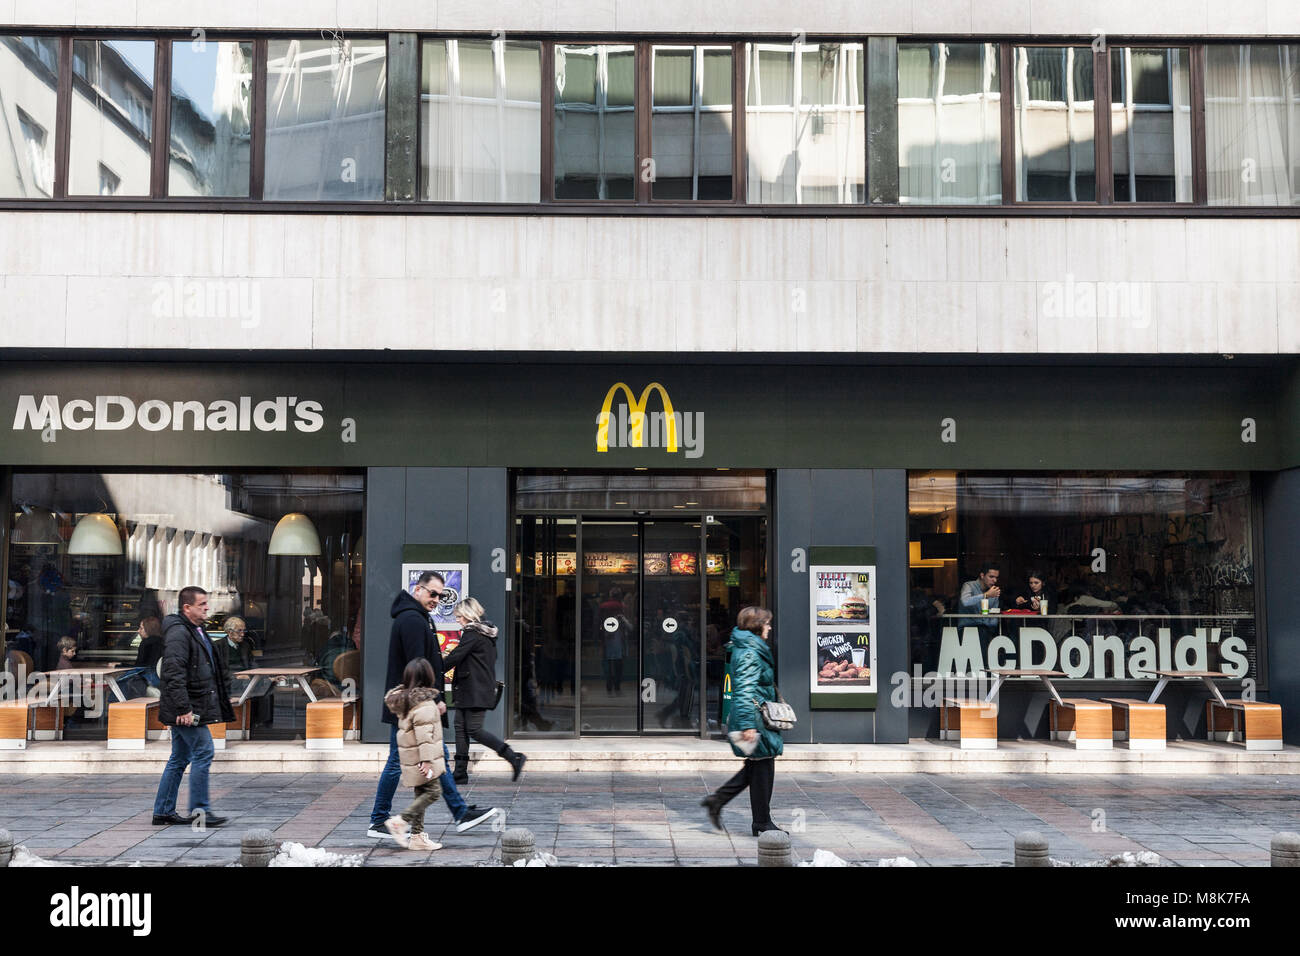 SARAJEVO, BOSNIA - FEBRUARY 17, 2018: Pedestrians passing in front of a Mc Donald's restaurant on the main street - Stock Image